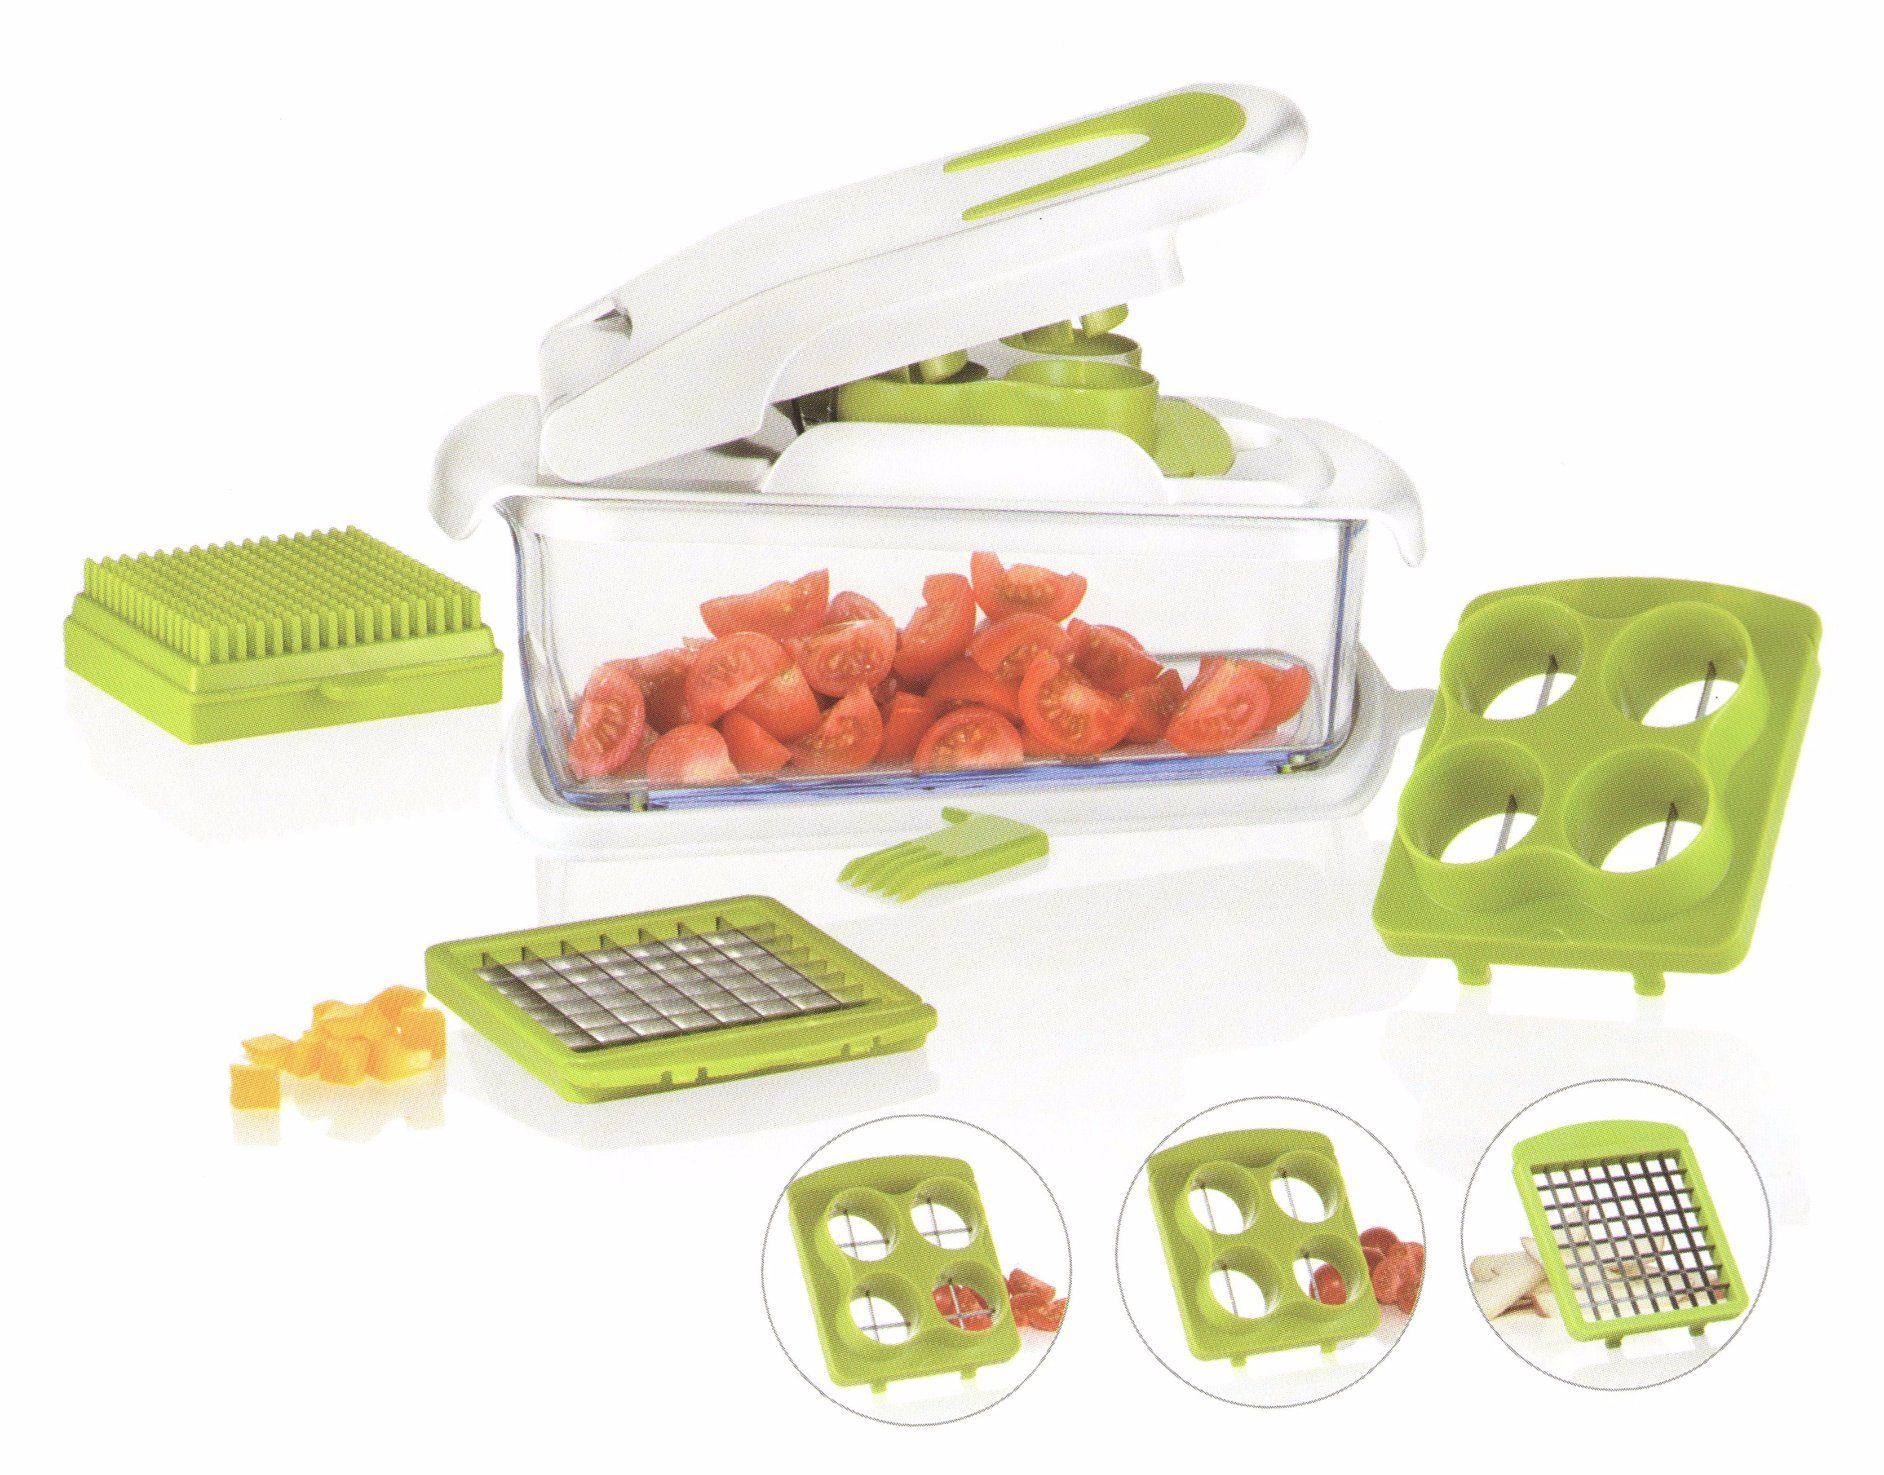 3 in 1 Plastic Food Processor Vegetable Chopper Cutting Machine Cg061